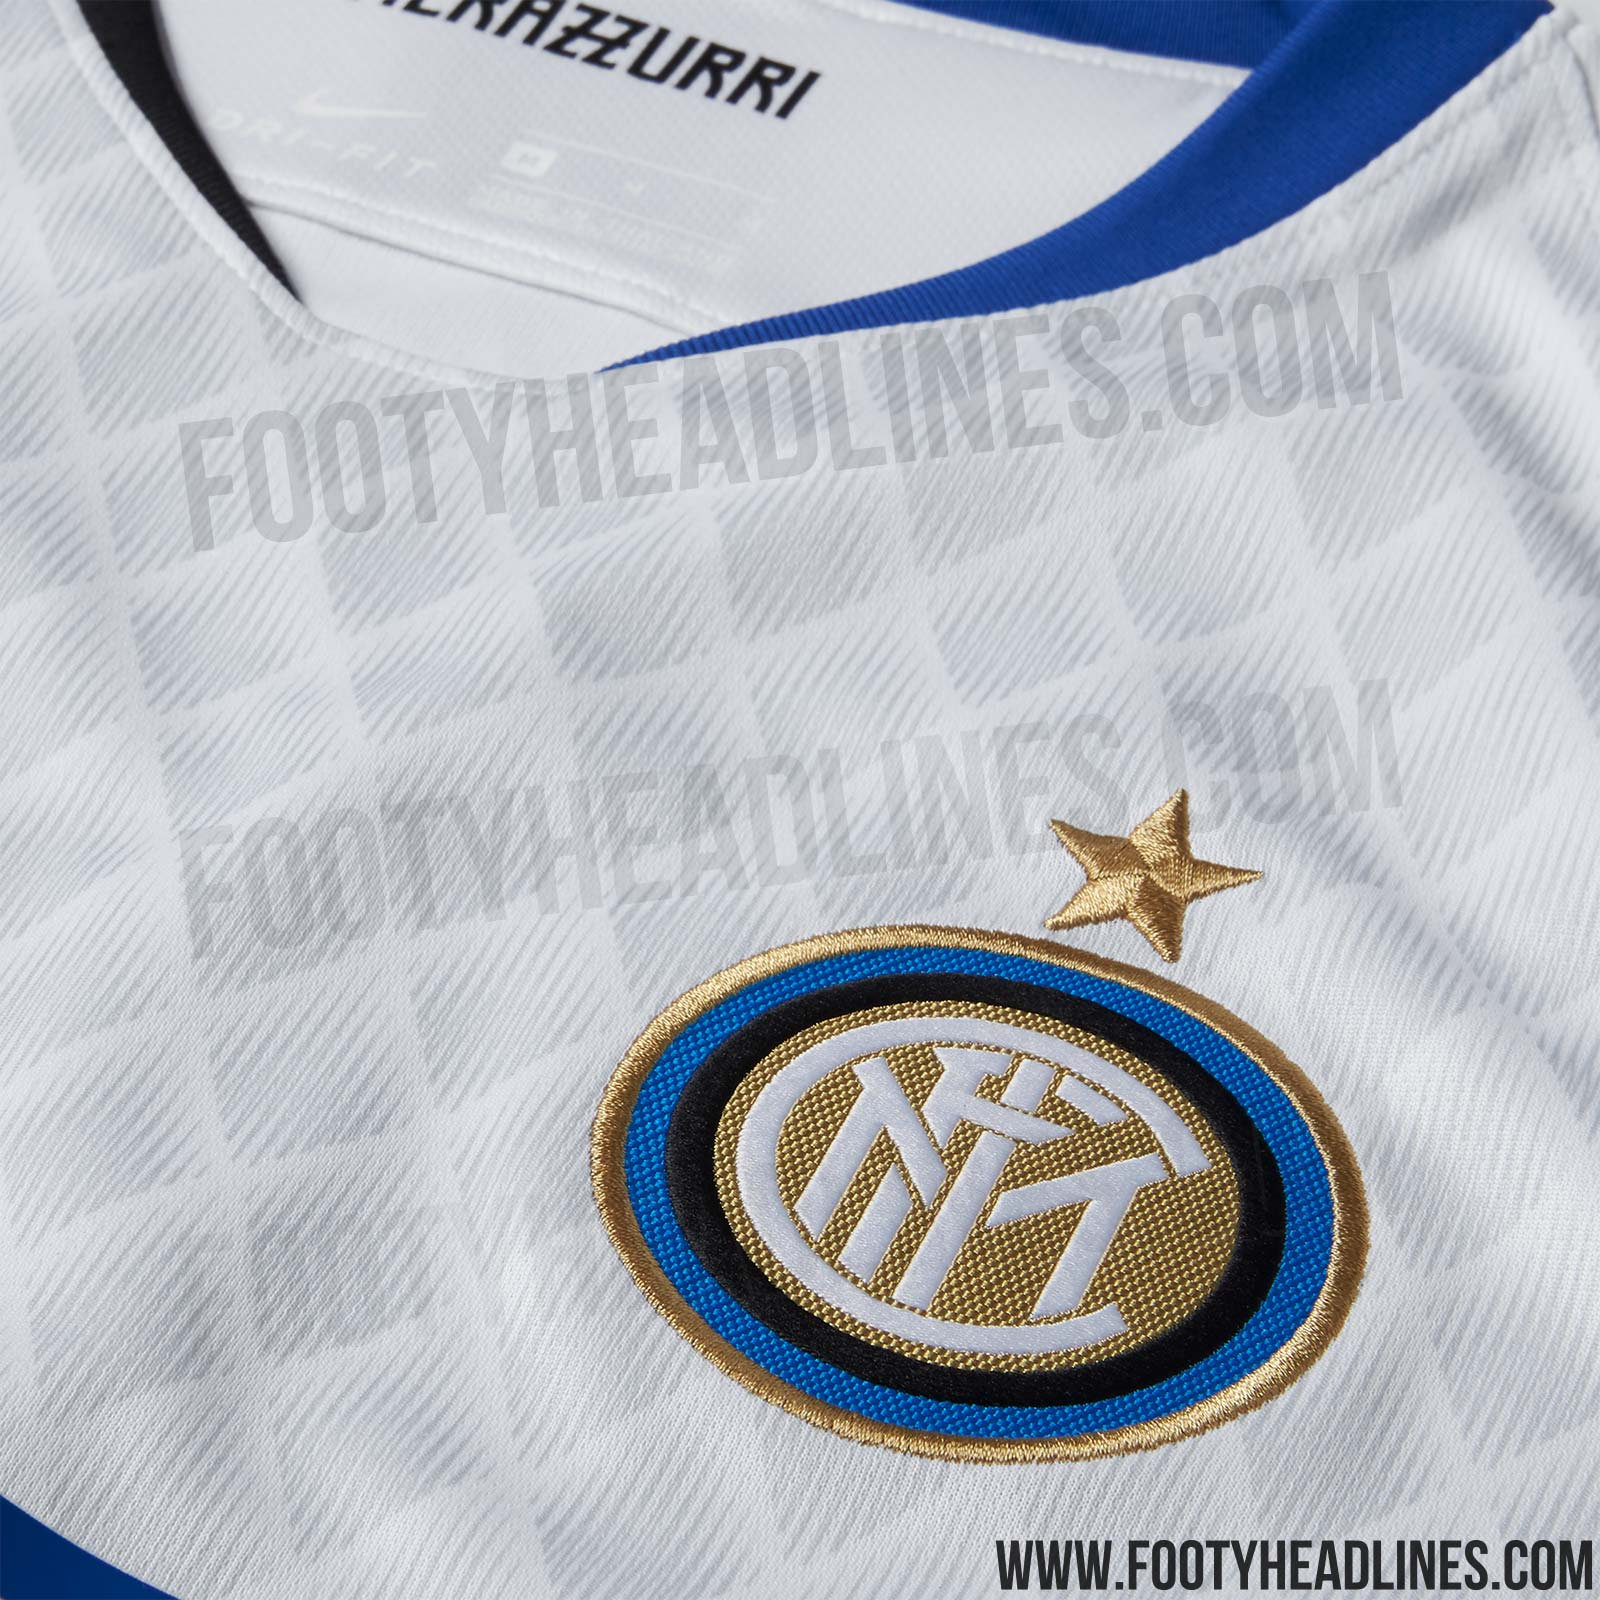 inter-18-19-away-kit-4.jpg